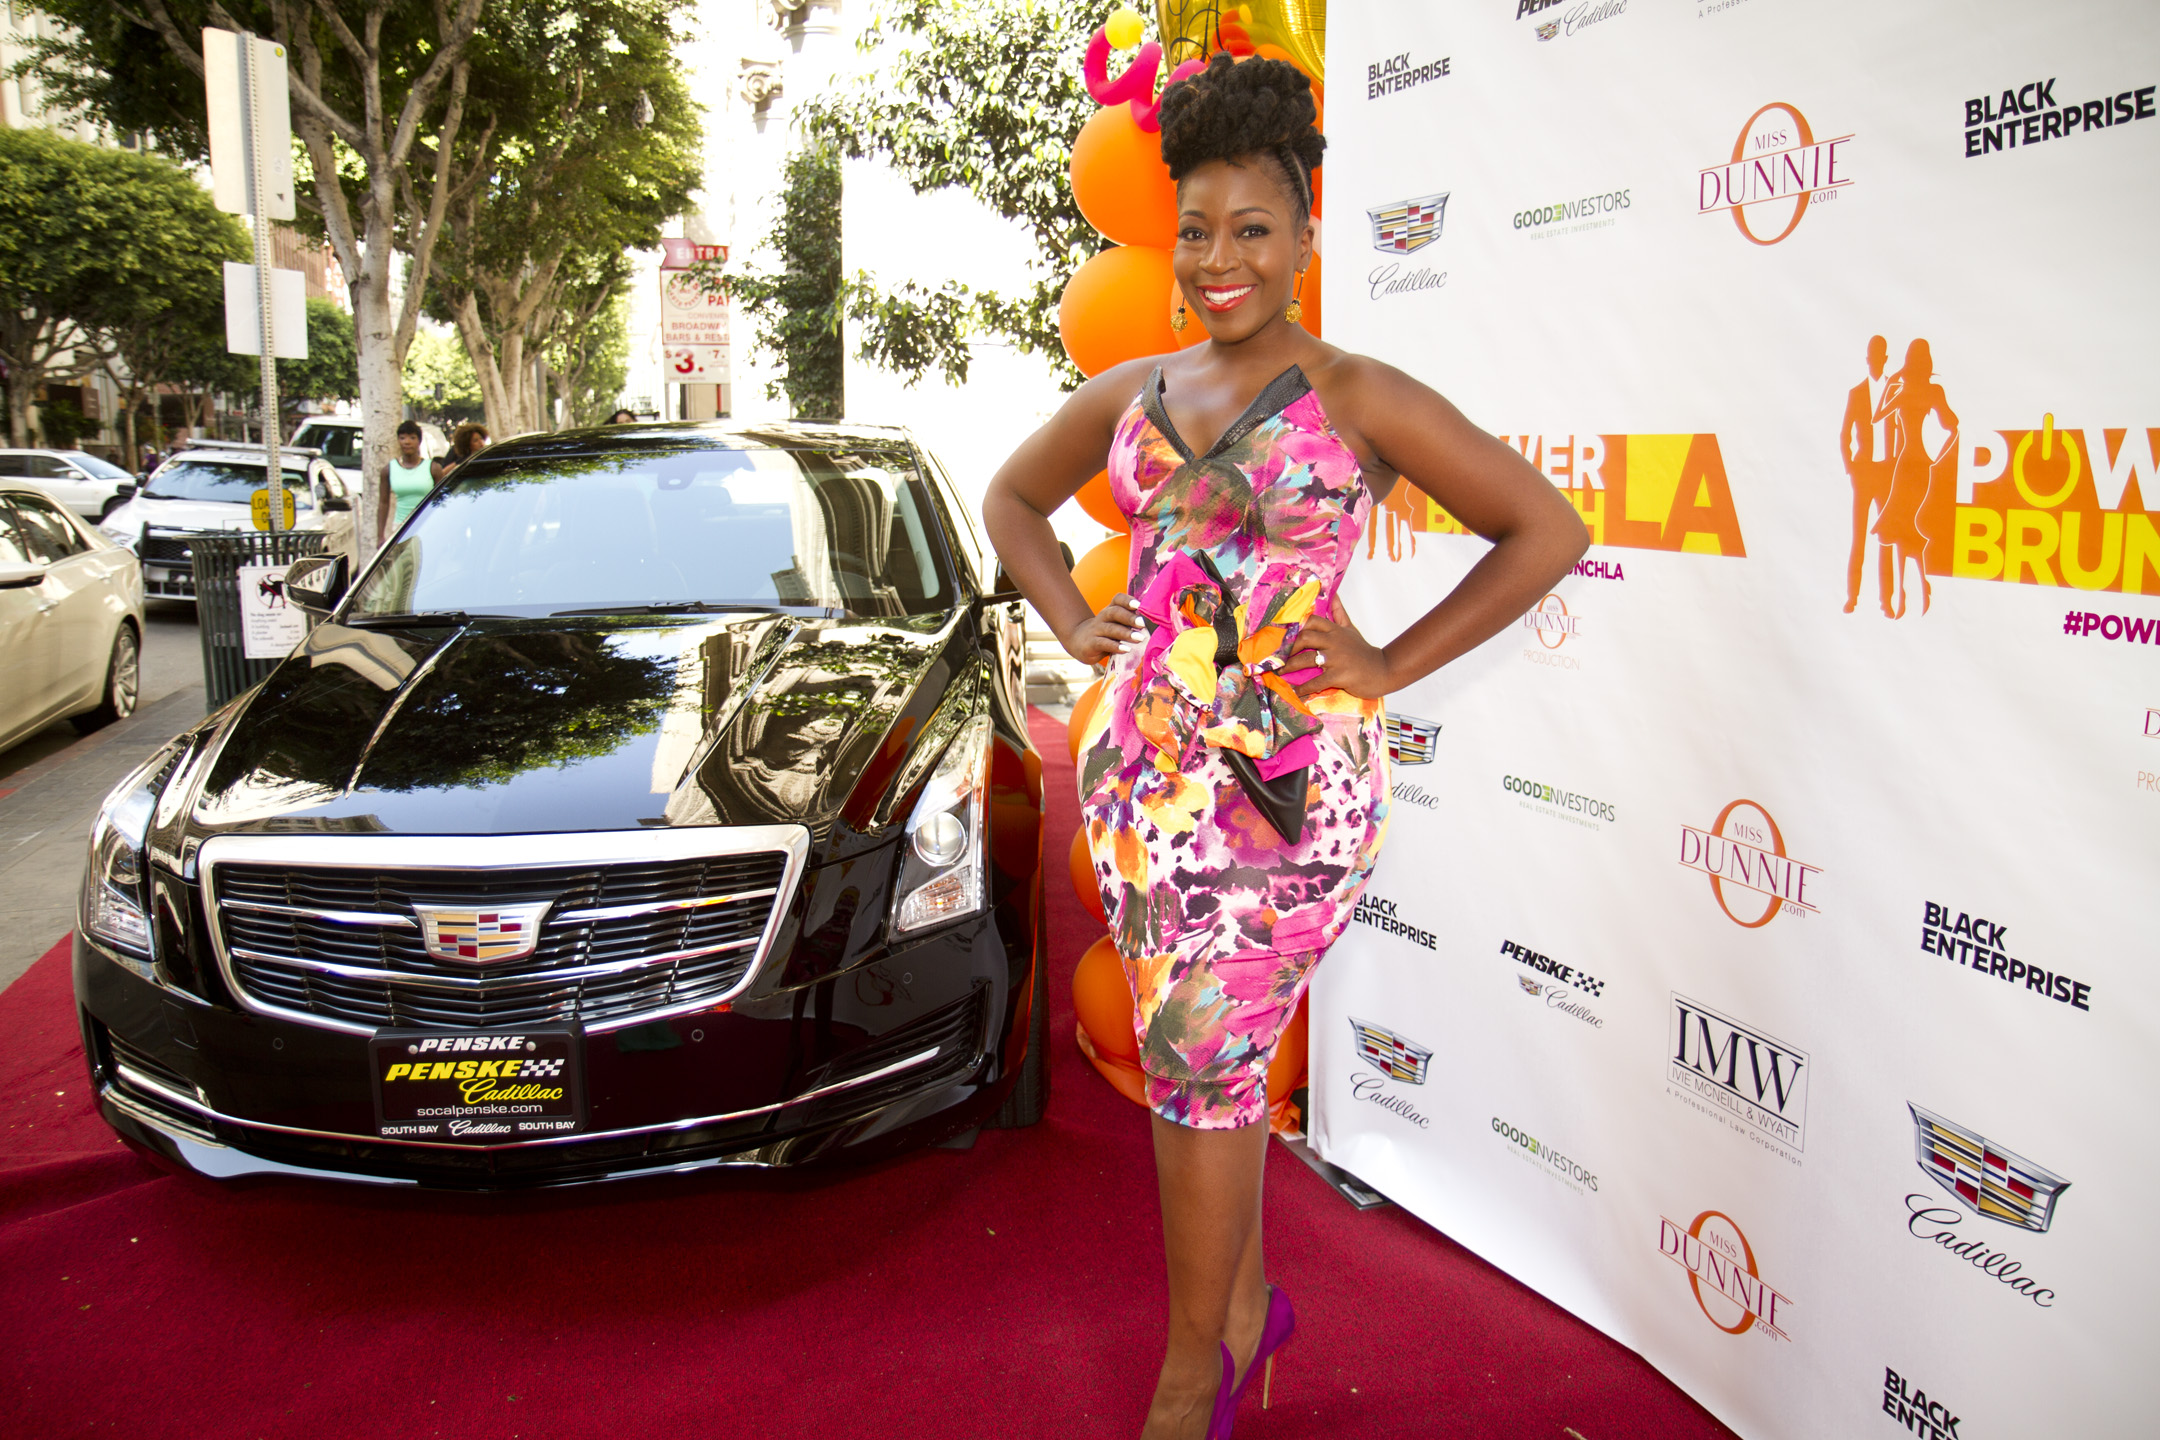 Cadillac, the title sponsor of the event, featured two of its luxury cars for display on the red carpet. Also, brands including Keurig and NewnyPooh cupcakes were featured as vendors and attendees were able to mix and mingle with representatives from all of the spotlighted companies. A DJ also played music for everyone's enjoyment.